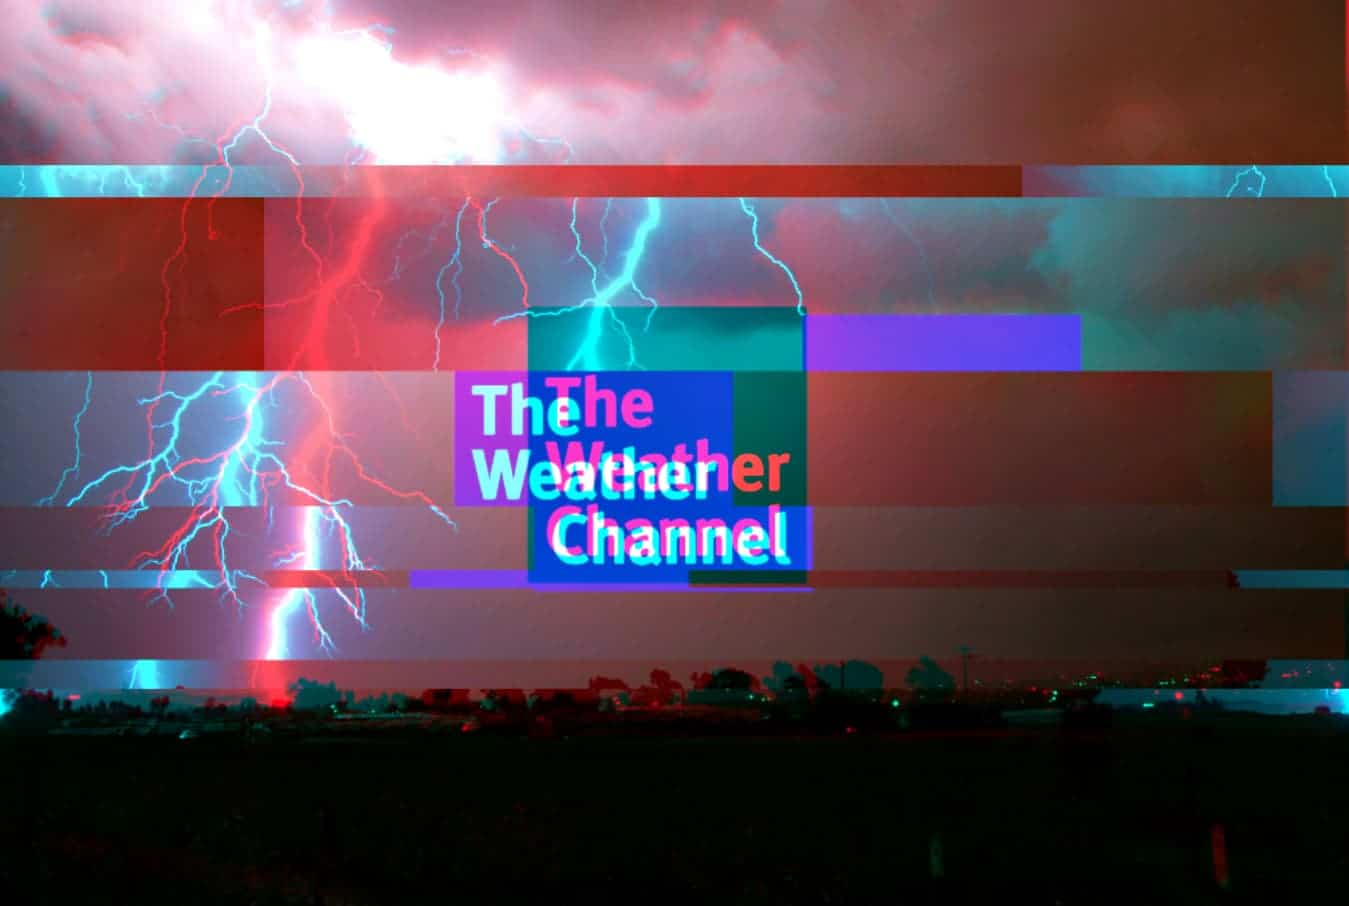 The-weather-channel-goes-offline-after-ransomware-attack